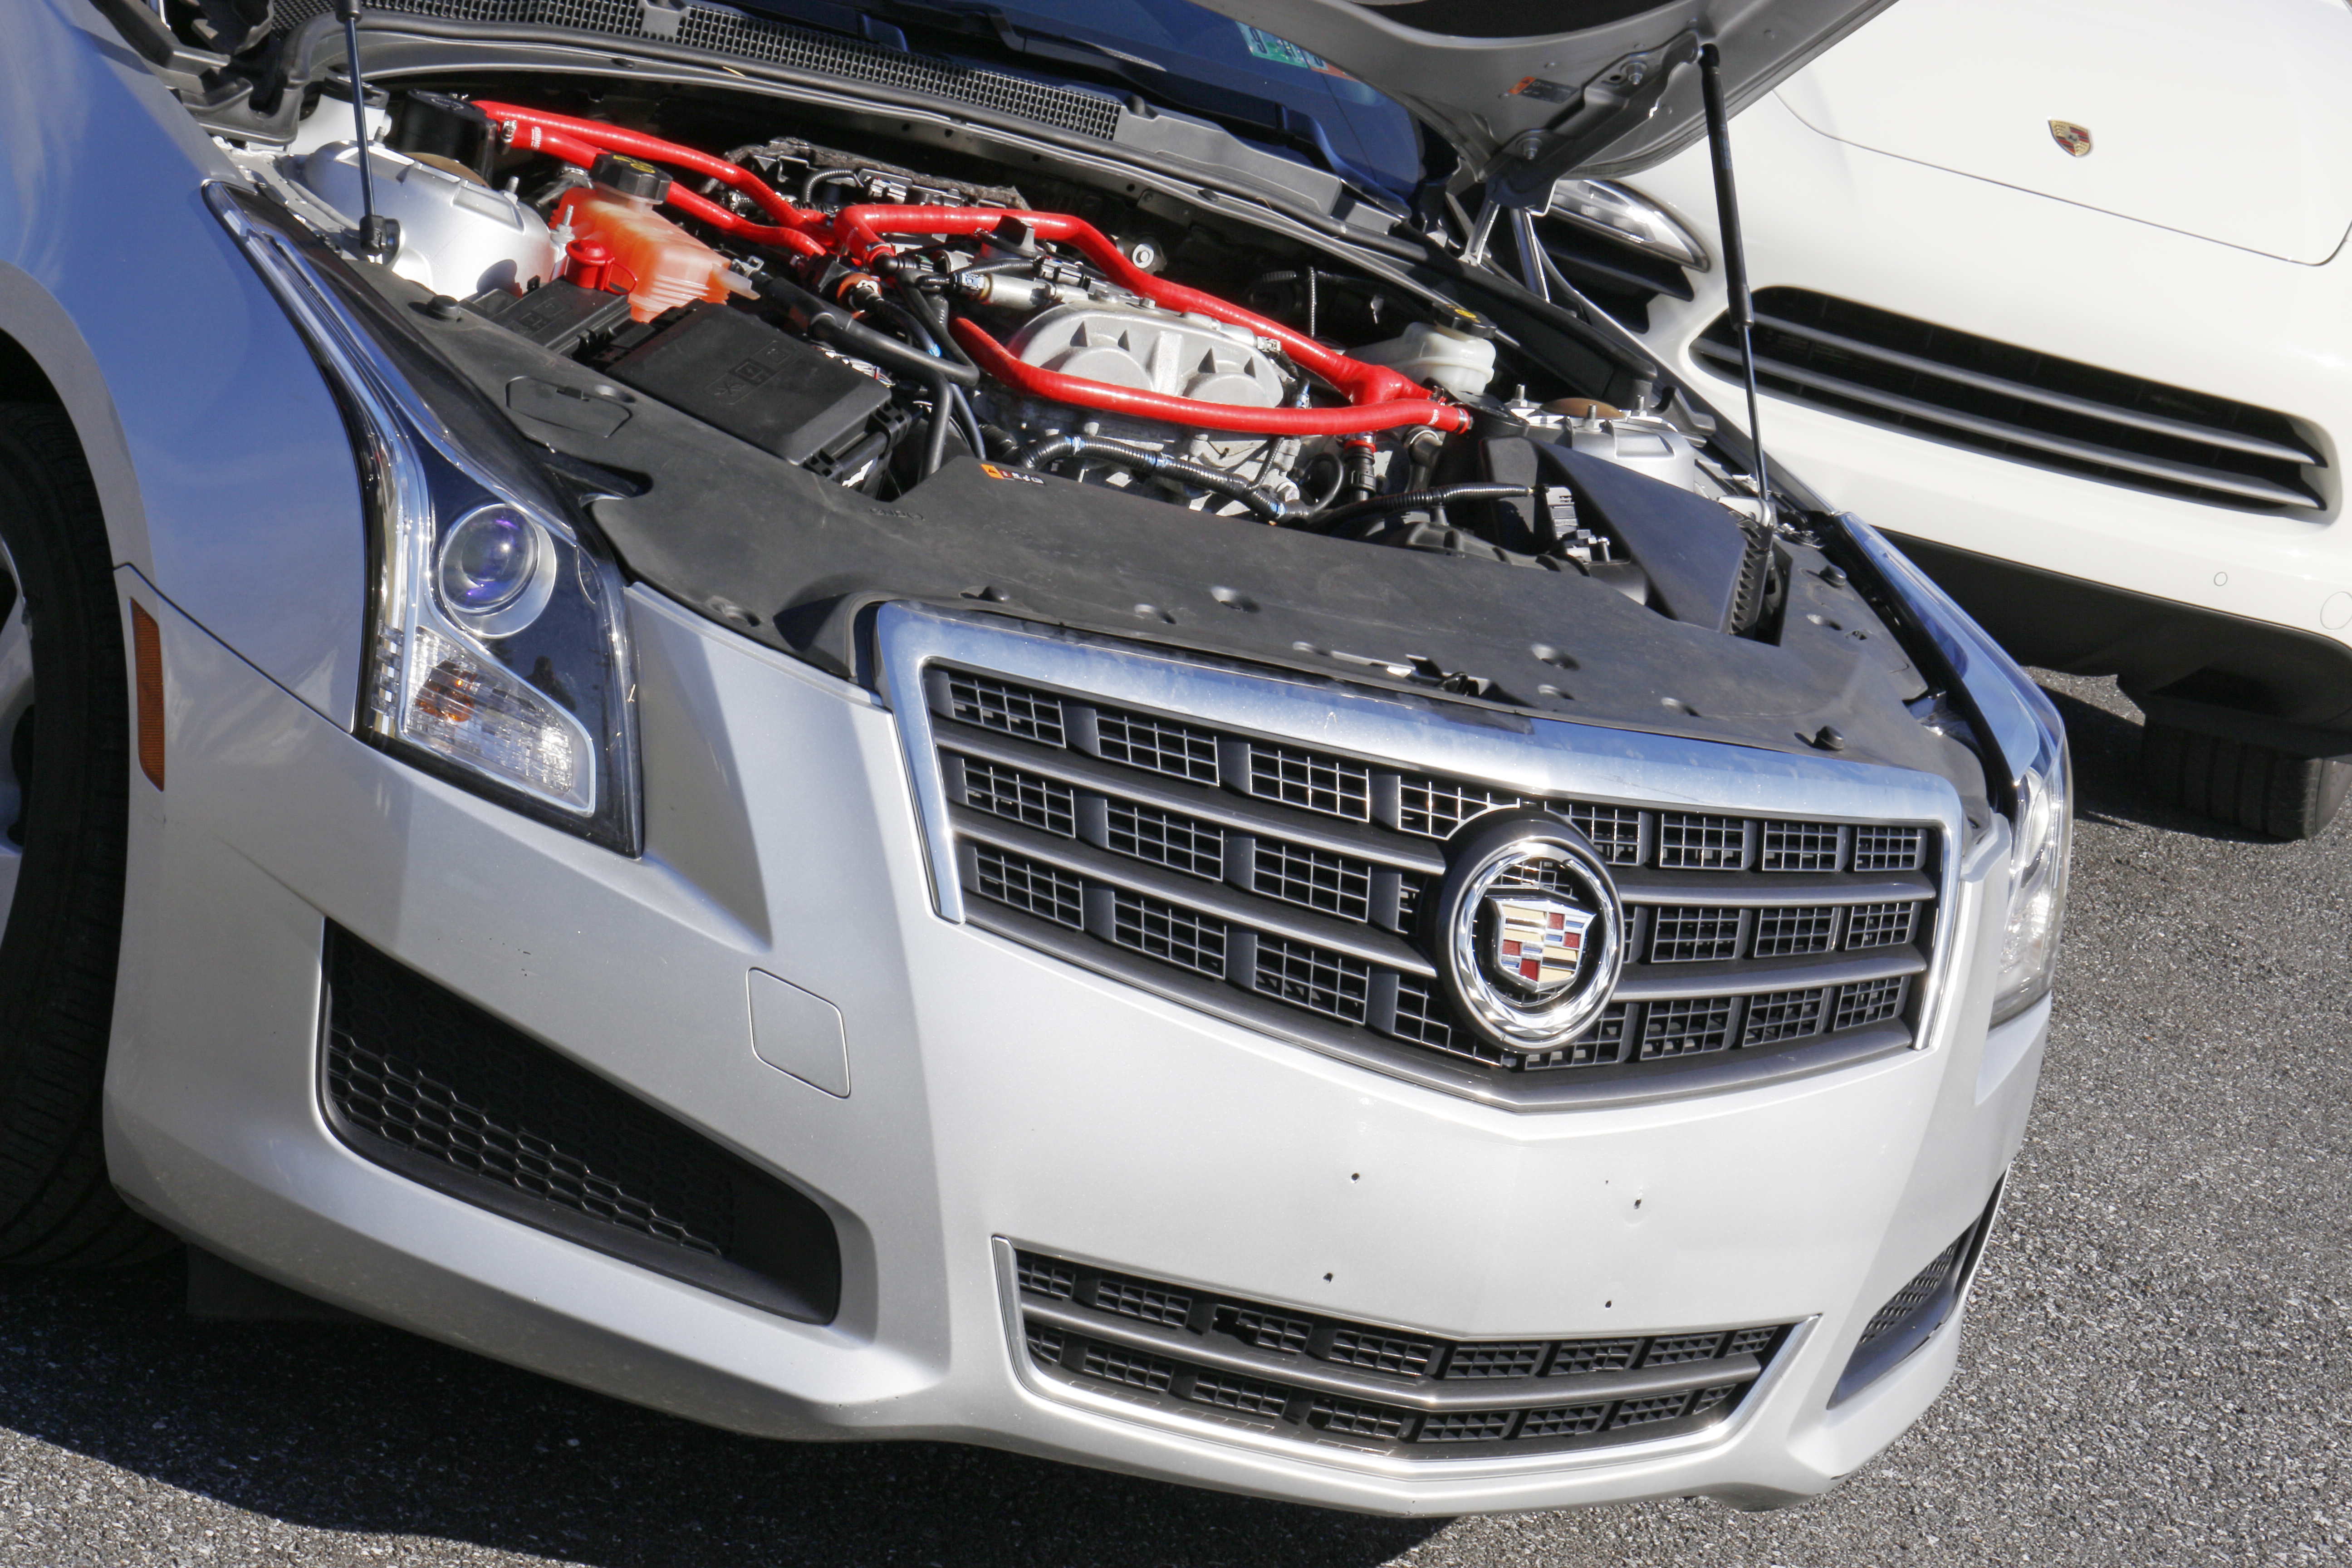 2013 Cadillac Ats Catch Can R Amp D Part 6 Test Fit